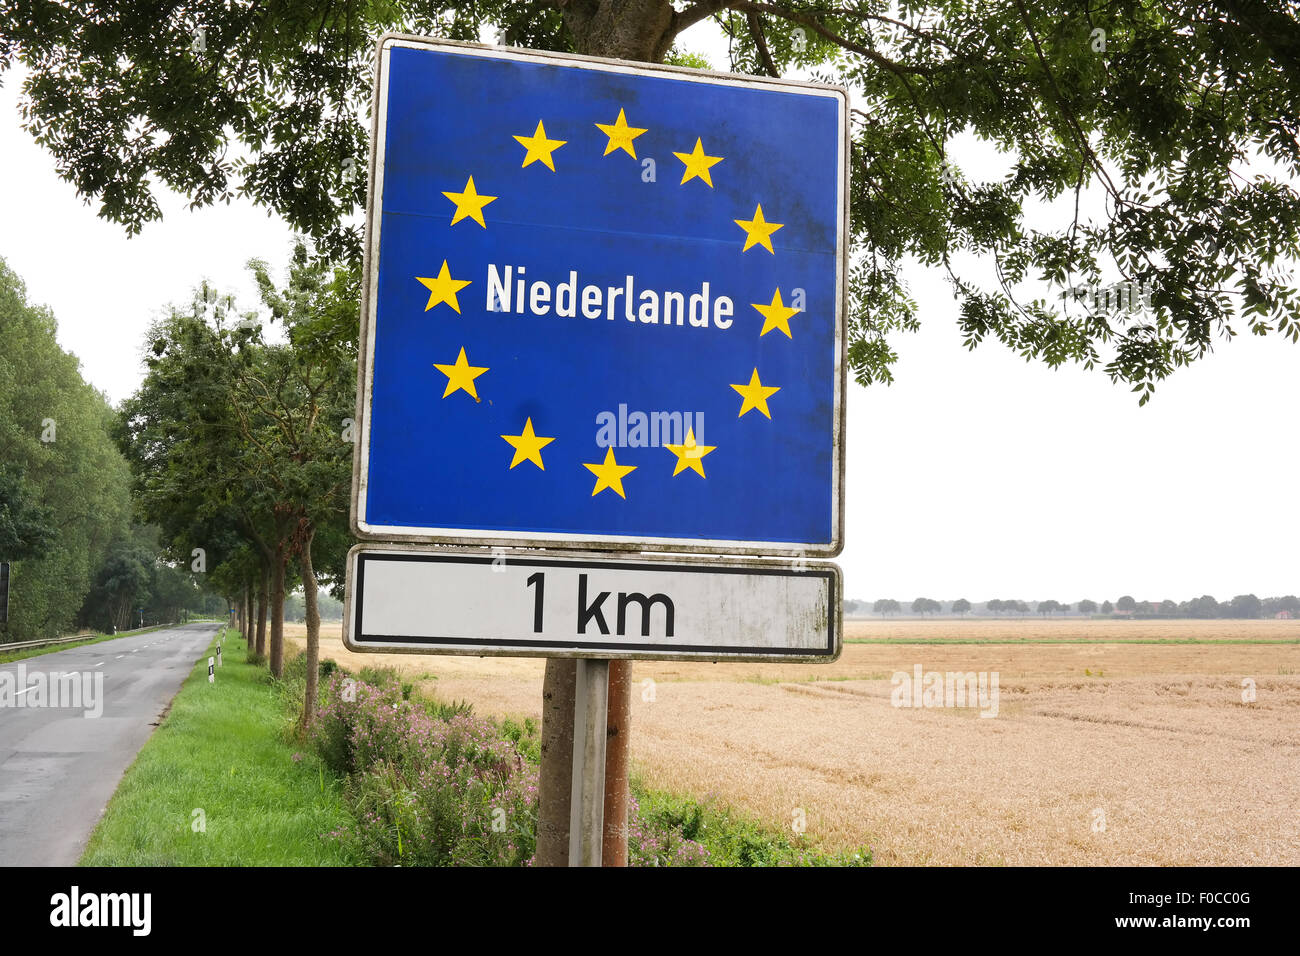 Draw near The Netherlands. Sign near the border of The Netherlands written in German. - Stock Image